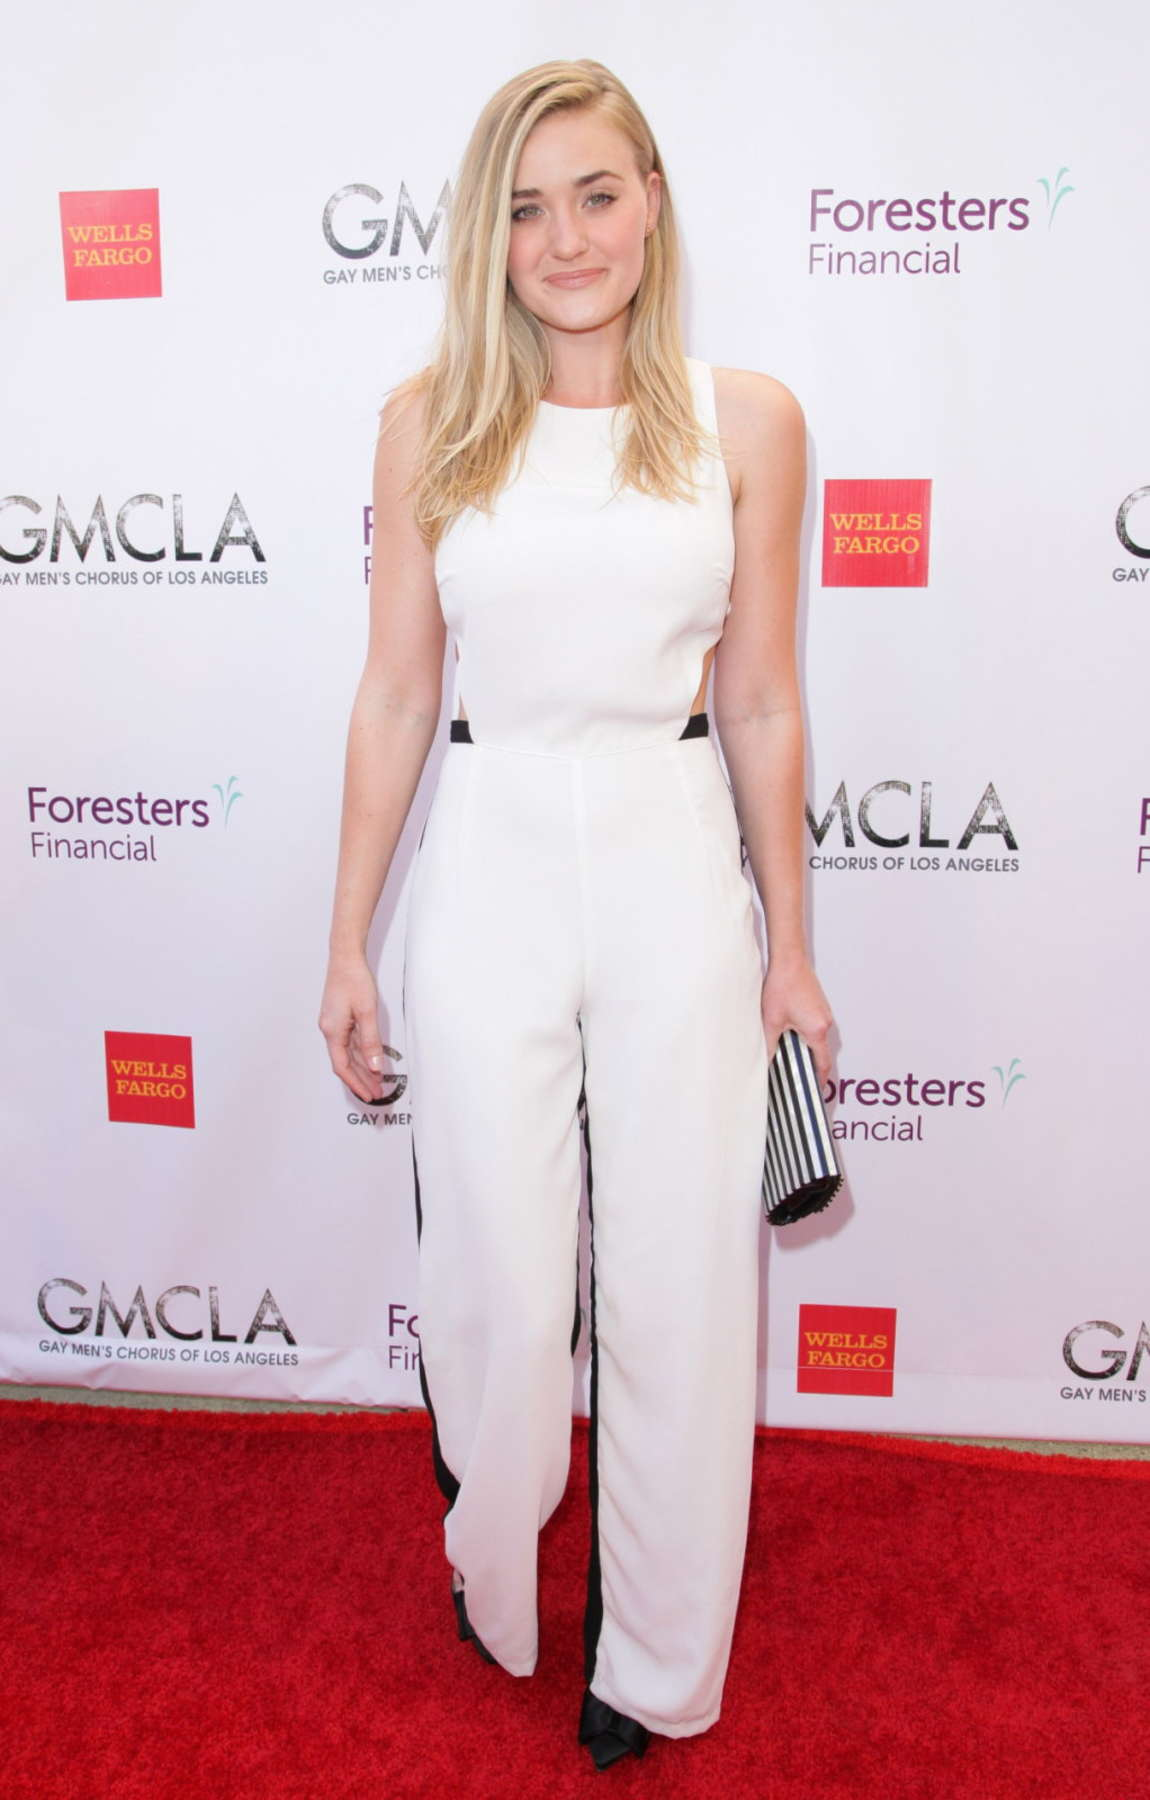 AJ Michalka GMCLAs Annual Voice Awards in Hollywood